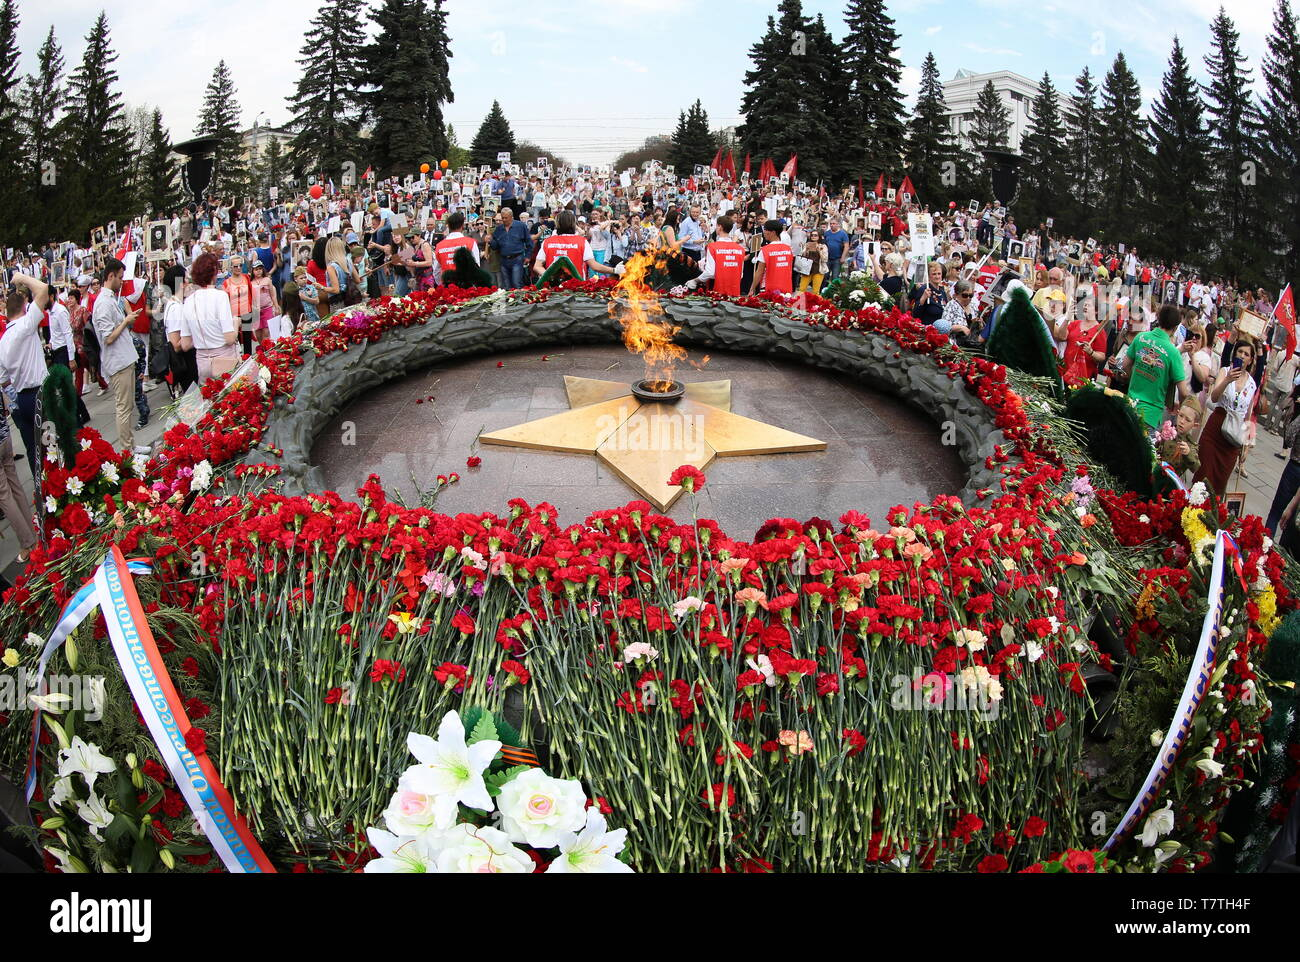 Chelyabinsk, Russia. 09th May, 2019. CHELYABINSK, RUSSIA - MAY 9. 2019: People hold portraits of their relatives who fought in WWII as they gather at the Eternal Flame memorial in the city of Chelyabinsk, during celebrations marking the 74th anniversary of Soviet victory in the 1941-1945 Great Patriotic War (part of WWII). Nail Fattakhov/TASS Credit: ITAR-TASS News Agency/Alamy Live News Stock Photo